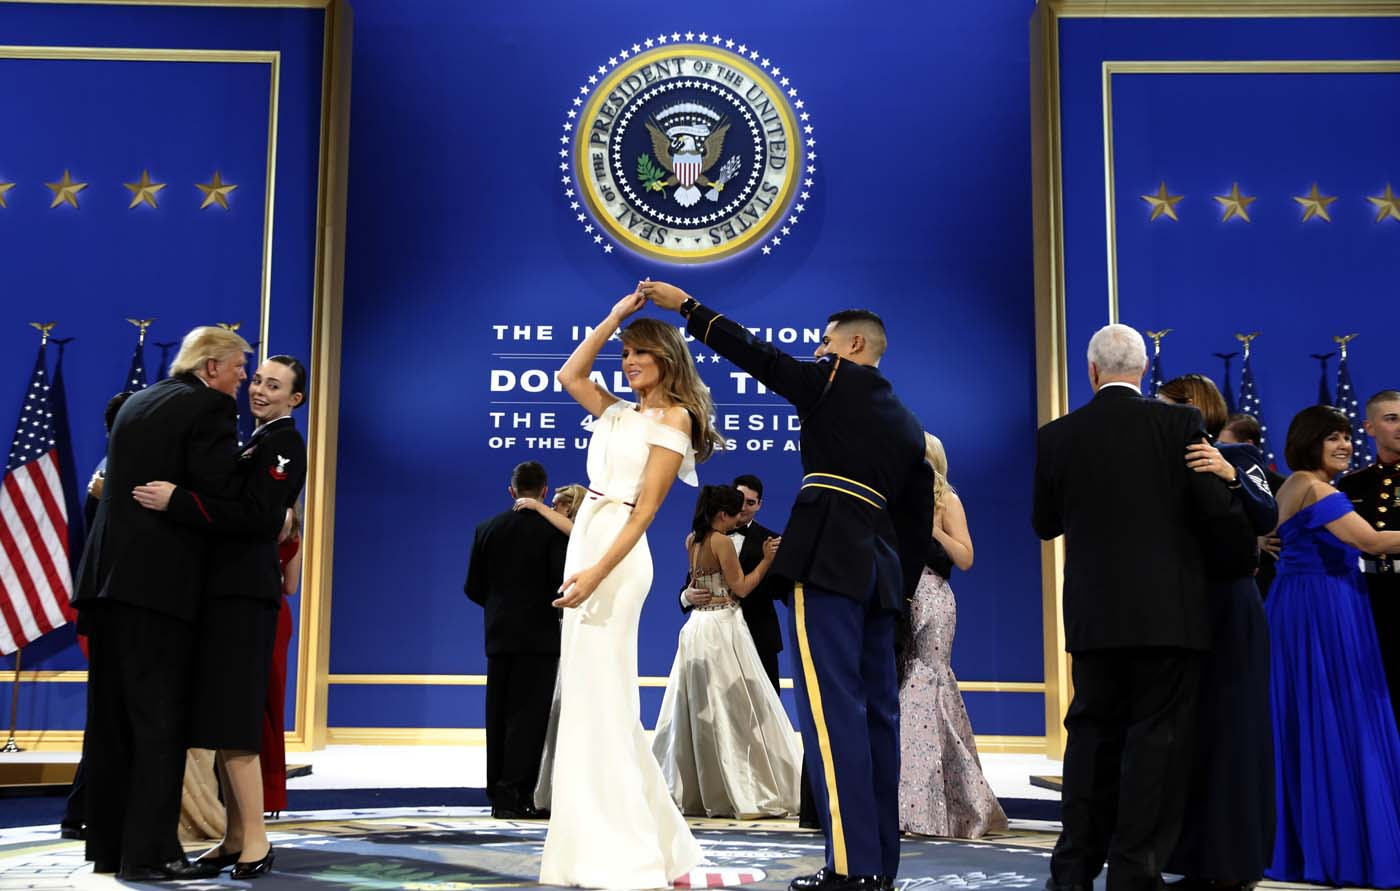 President Donald Trump, left, dances with Navy Petty Officer 2nd Class Catherine Cartmell as first lady Melania Trump is spun by Army Staff Sgt. Jose A. Medina during a dance at The Salute To Our Armed Services Inaugural Ball in Washington, Friday, Jan. 20, 2017. (AP Photo/Alex Brandon)